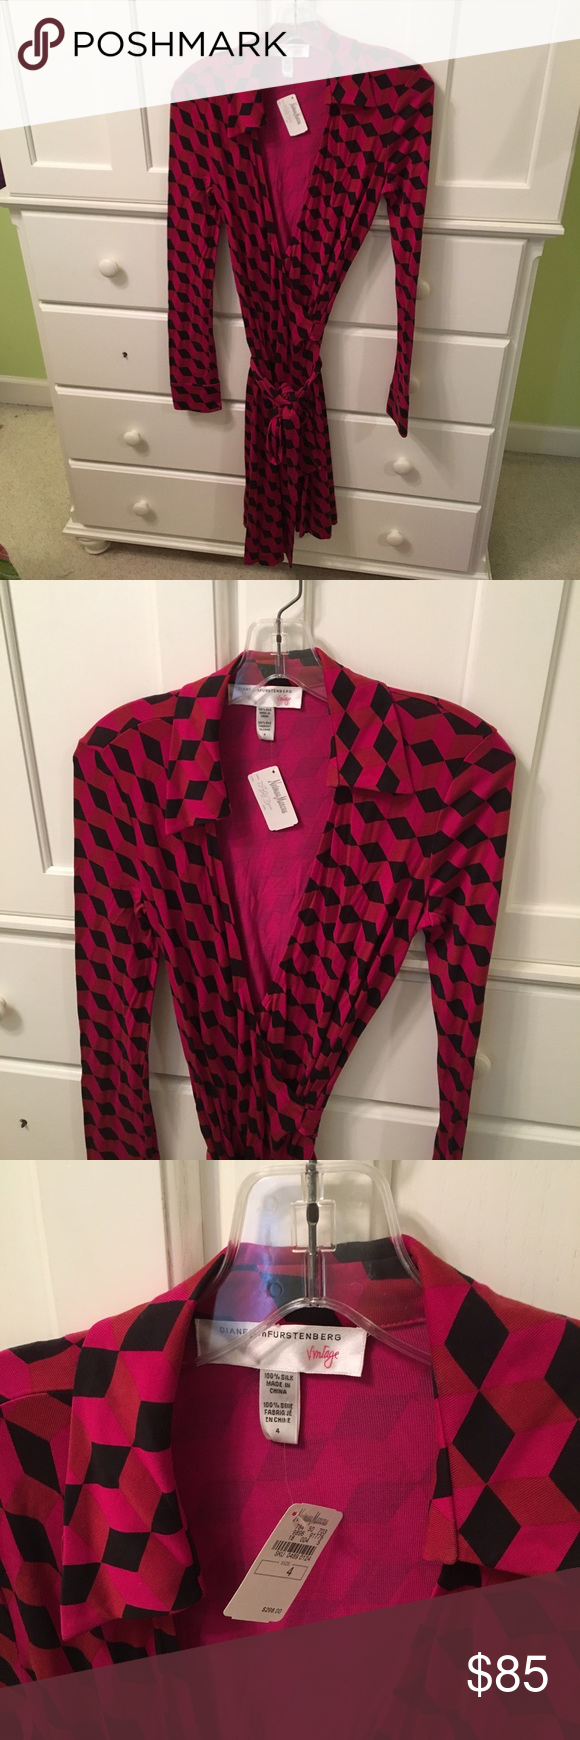 DVF long sleeve classic wrap dress Beautiful DVF classic wrap dress in size 4 never worn!! *item comes from a smoke and pet free home* Diane Von Furstenberg Dresses Long Sleeve